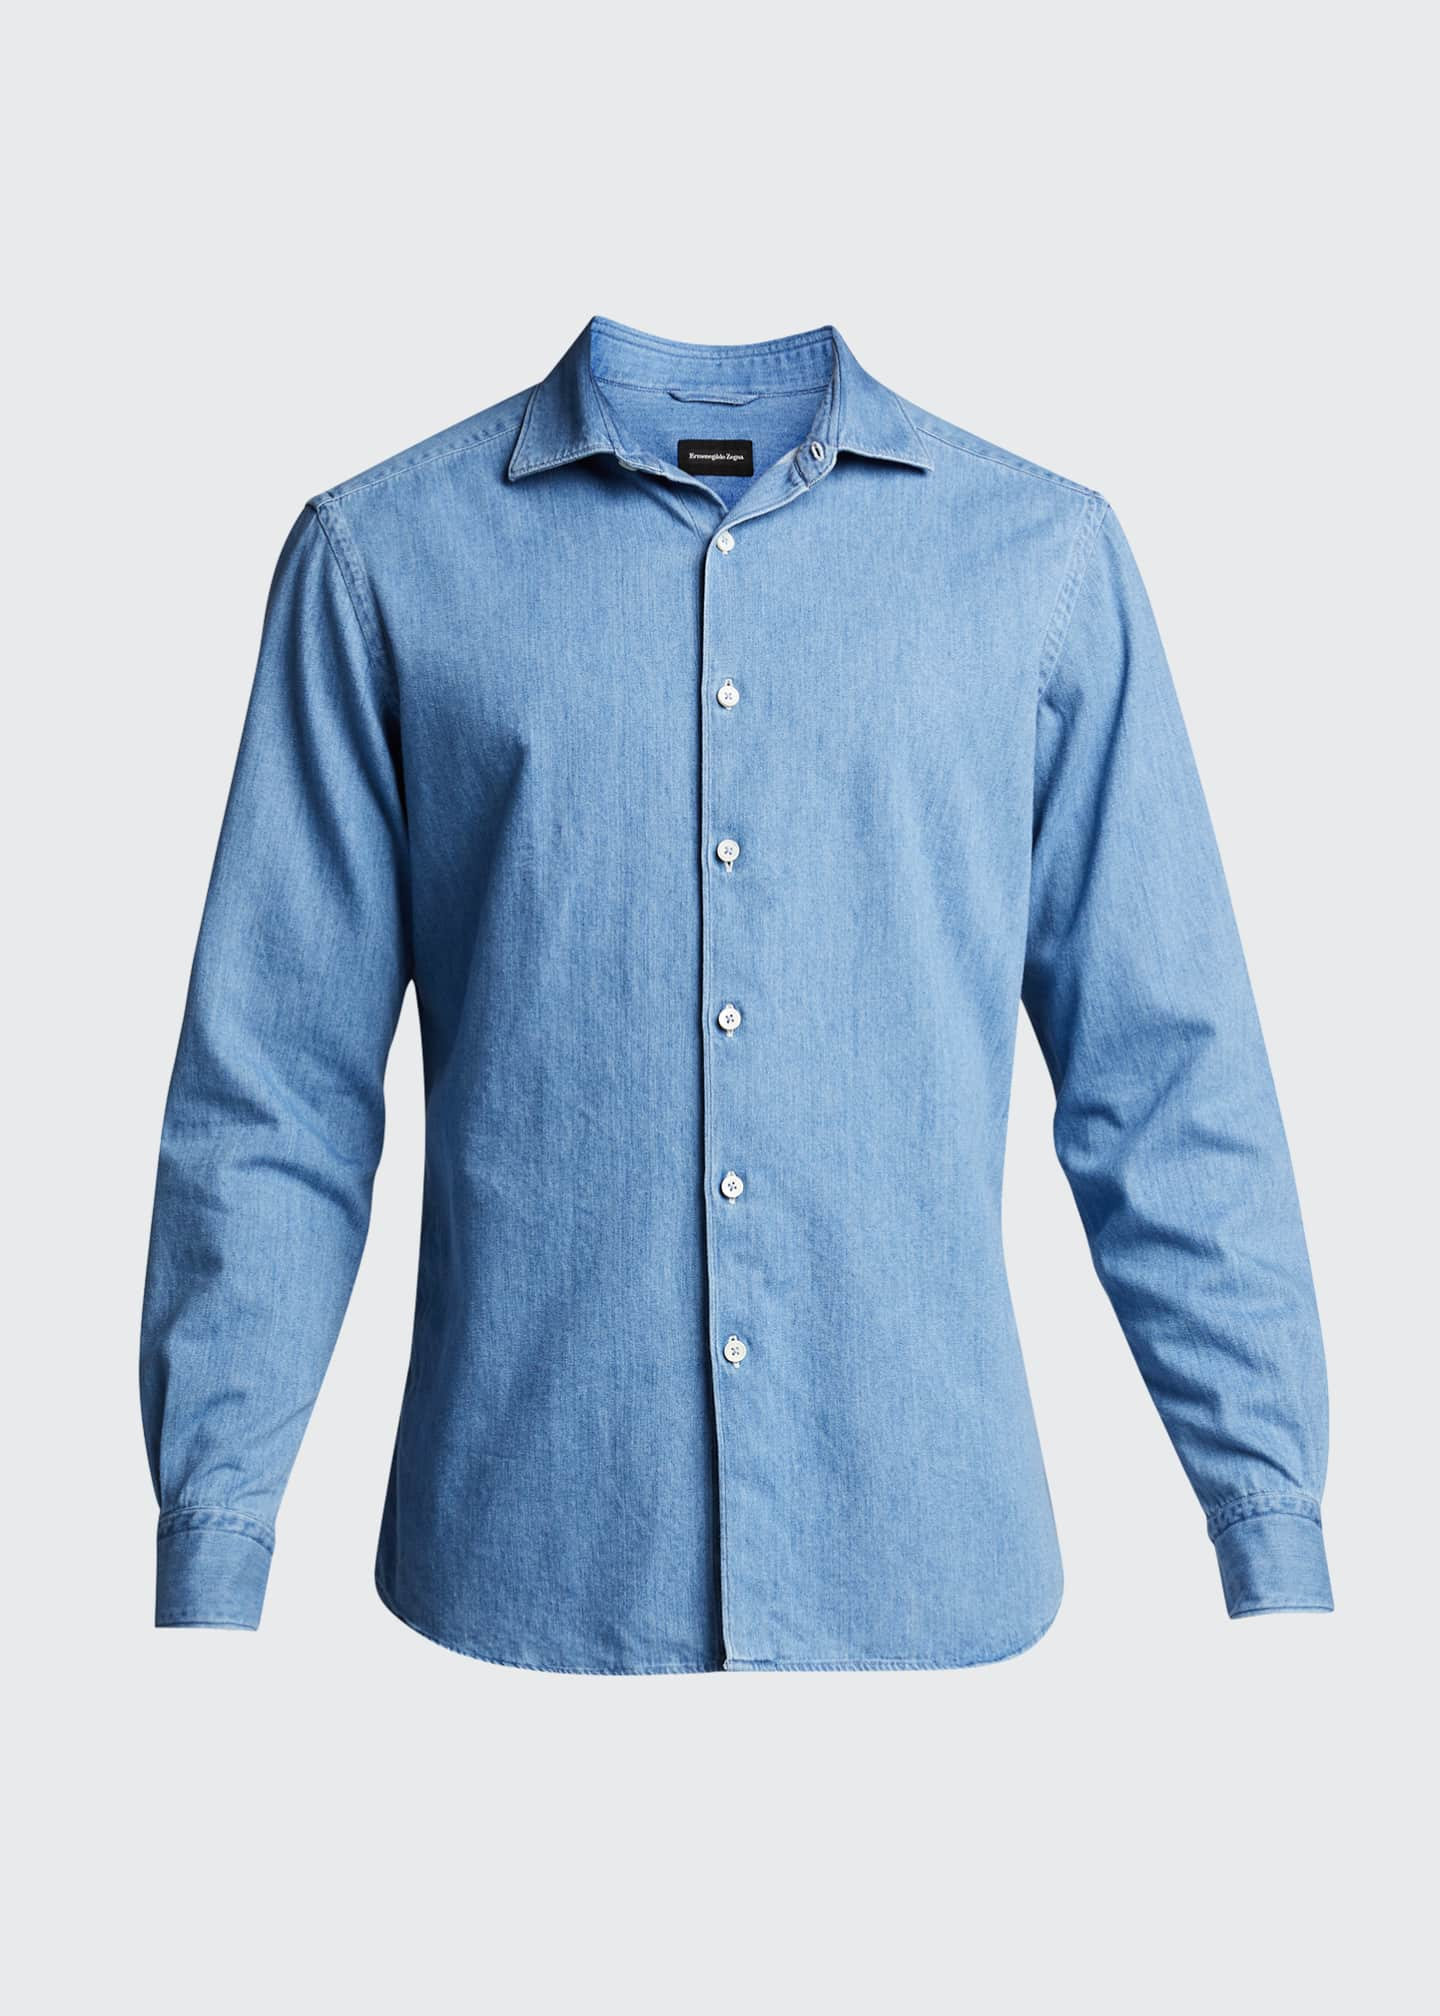 Image 5 of 5: Men's Light-Wash Denim Trim-Fit Sport Shirt